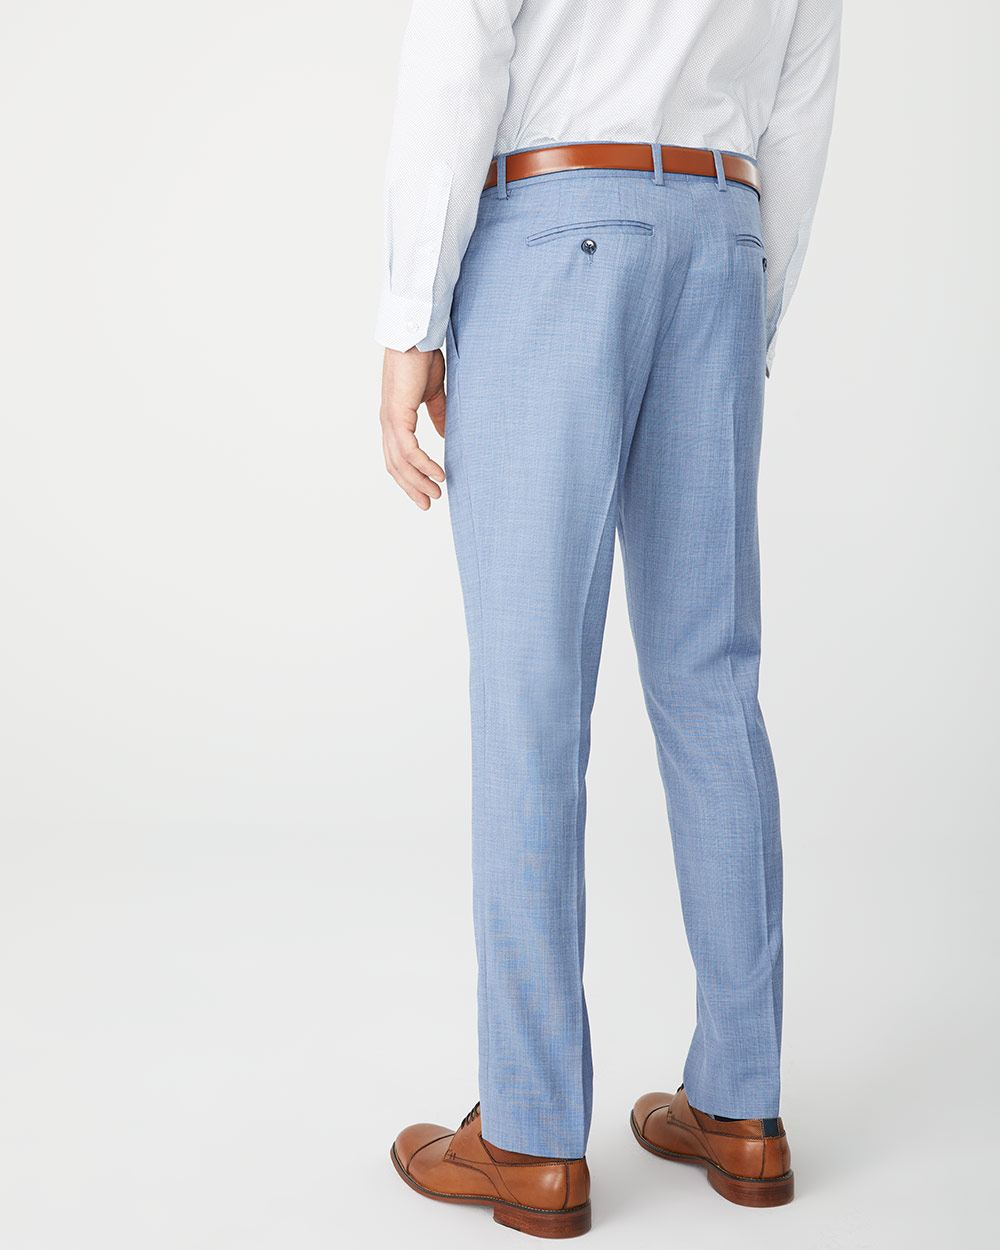 Slim Fit two-tone light blue suit pant